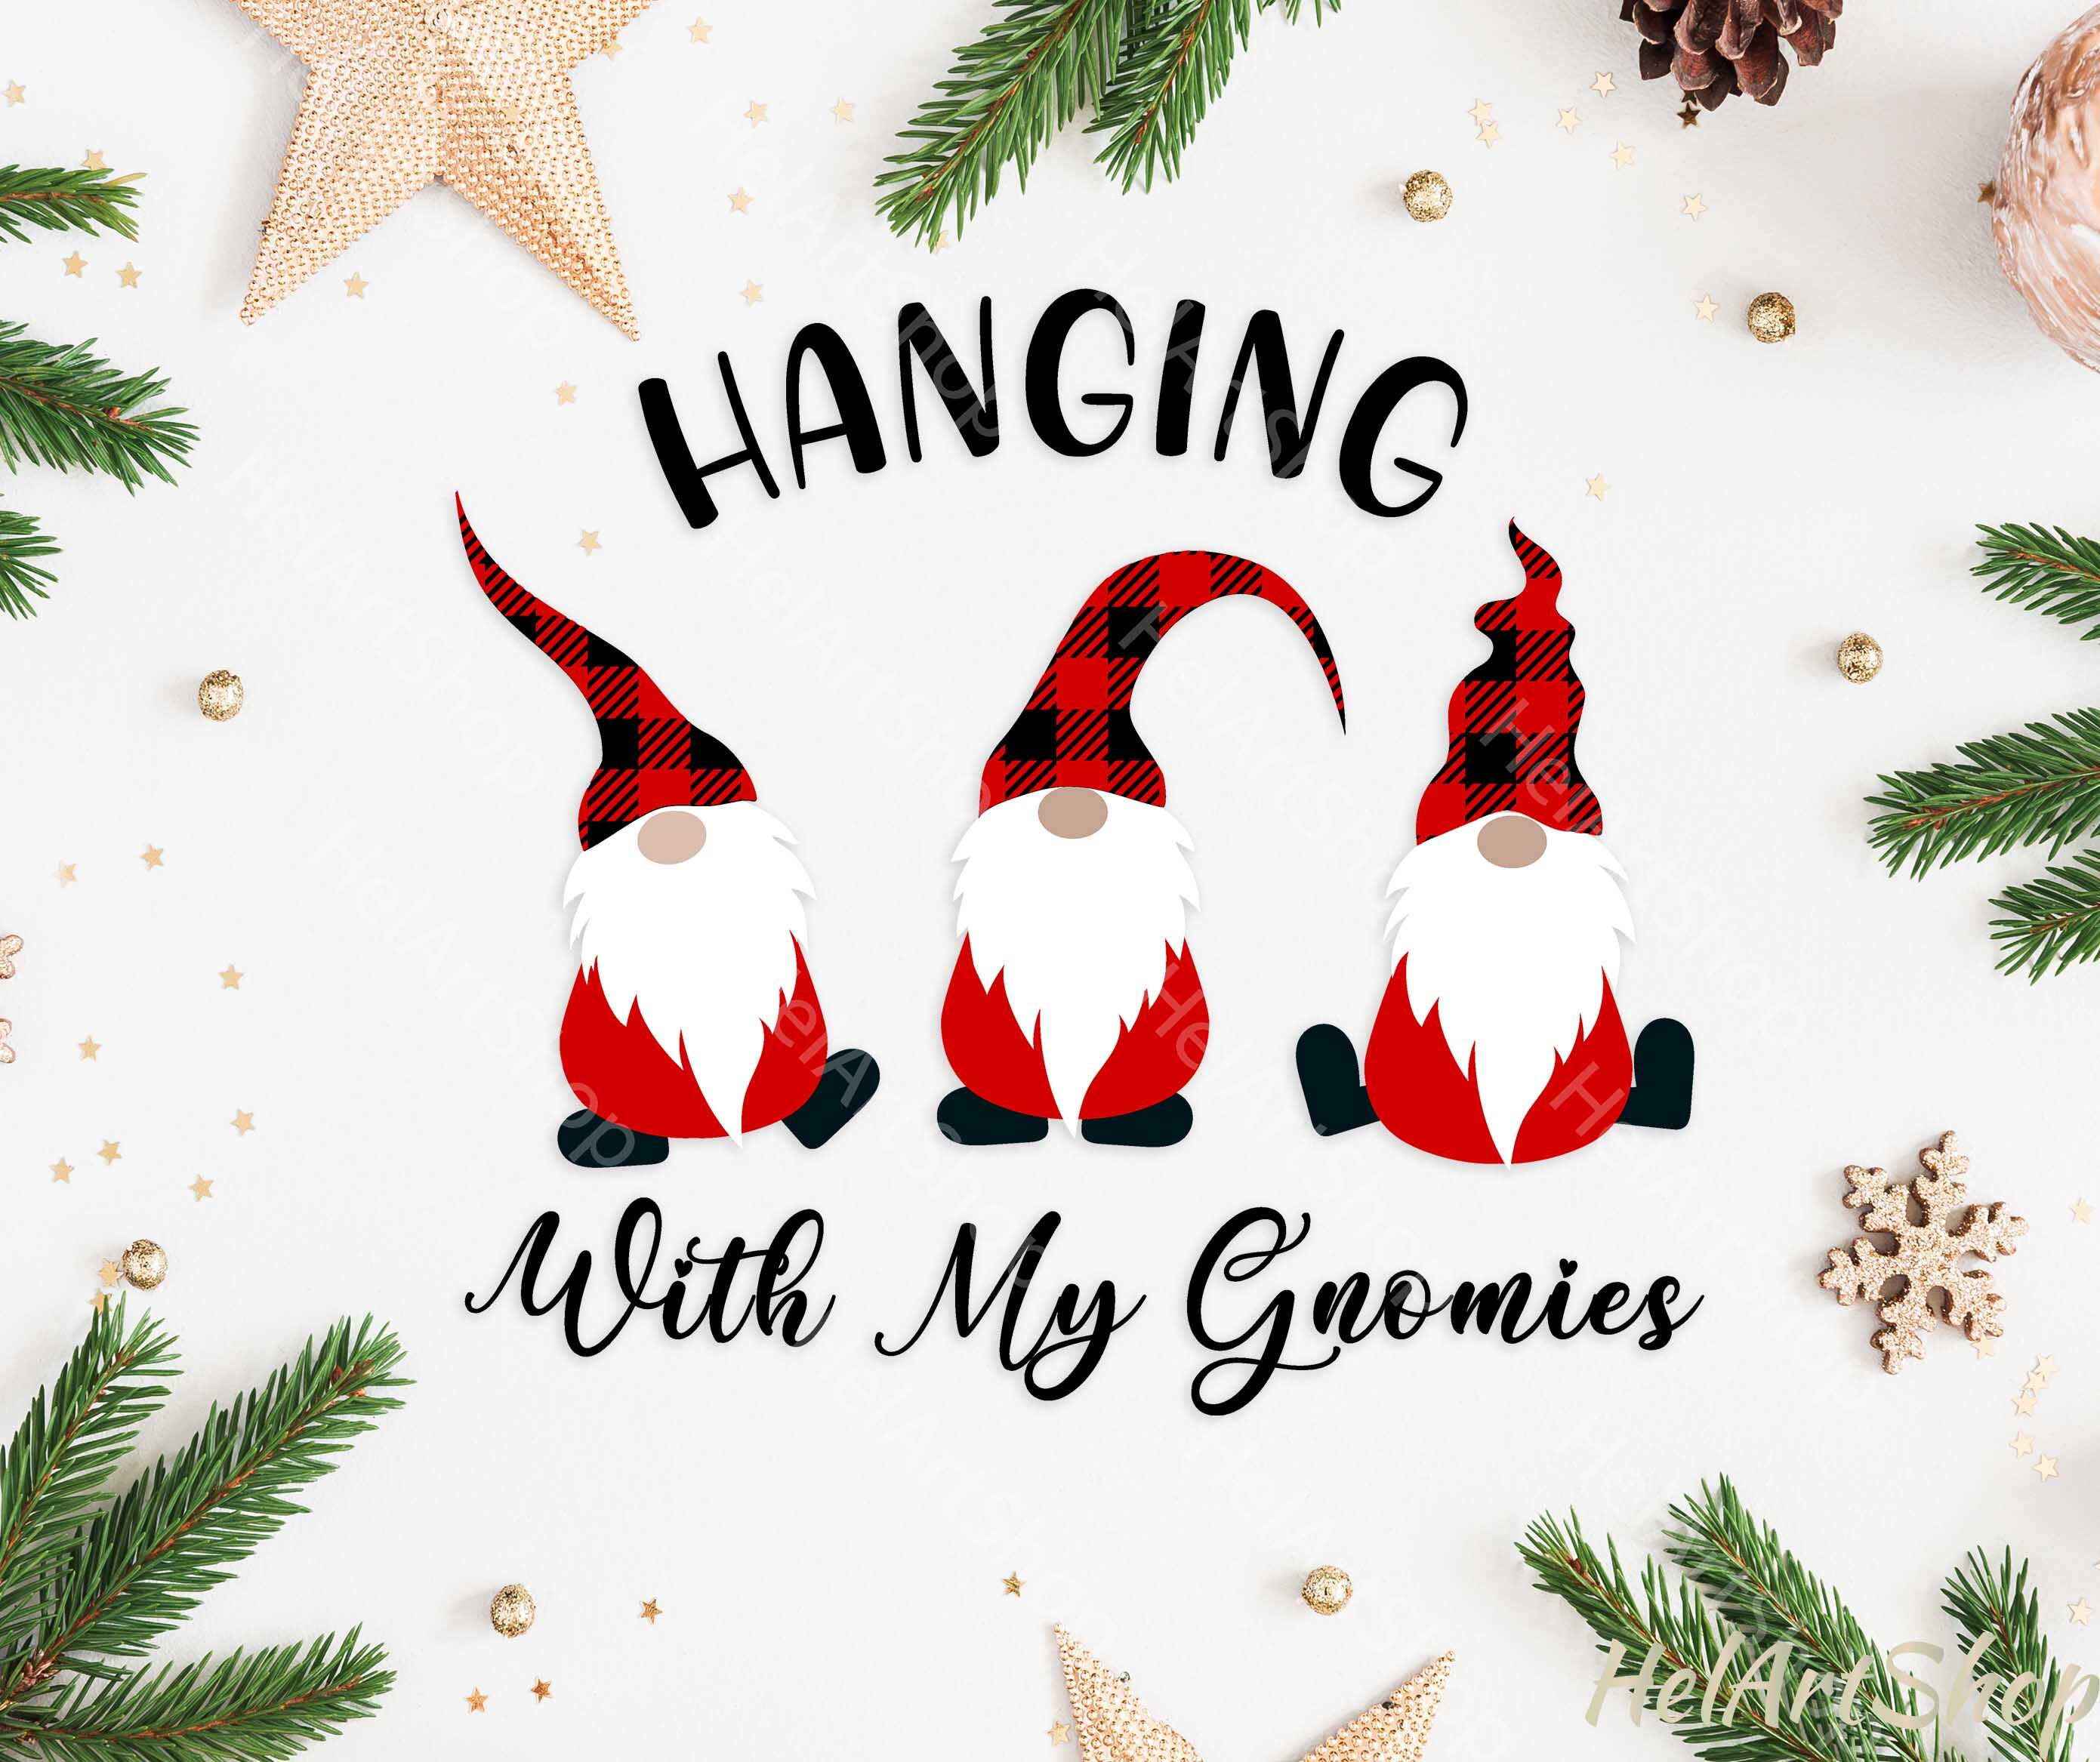 Christmas Gnome Hanging With My Gnomies Svg By Helartshop